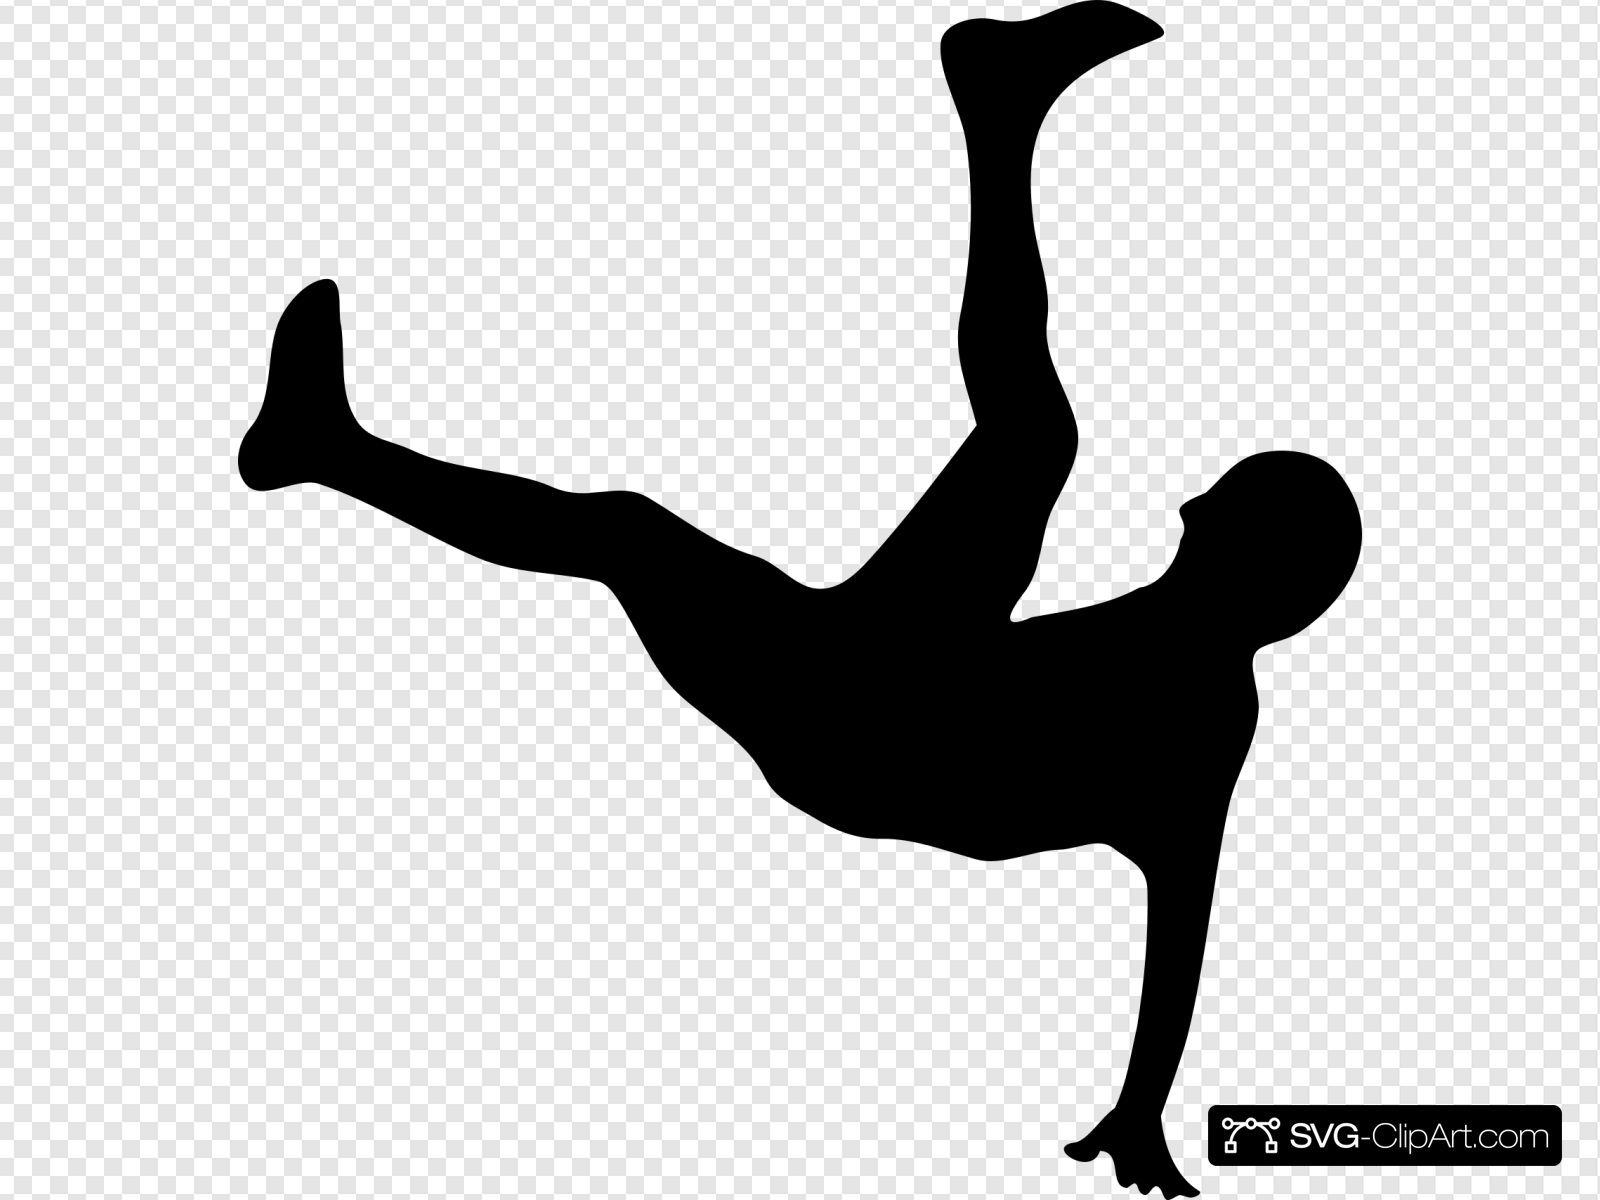 Man Falling Clip art, Icon and SVG.